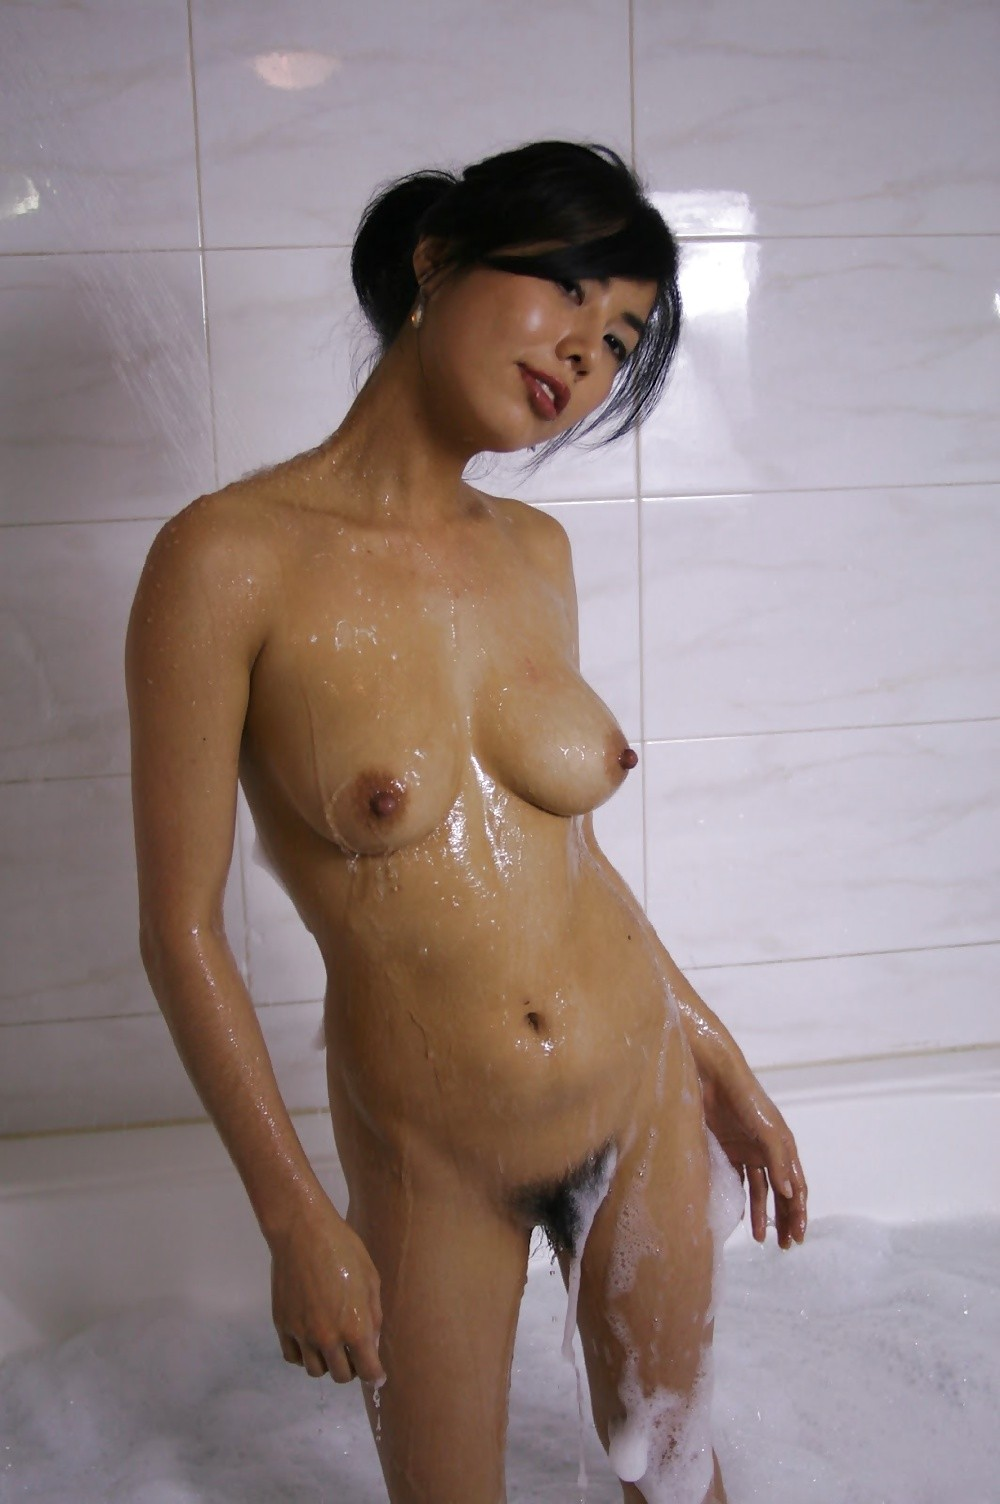 Final, sorry, Big titty koreans nude seems